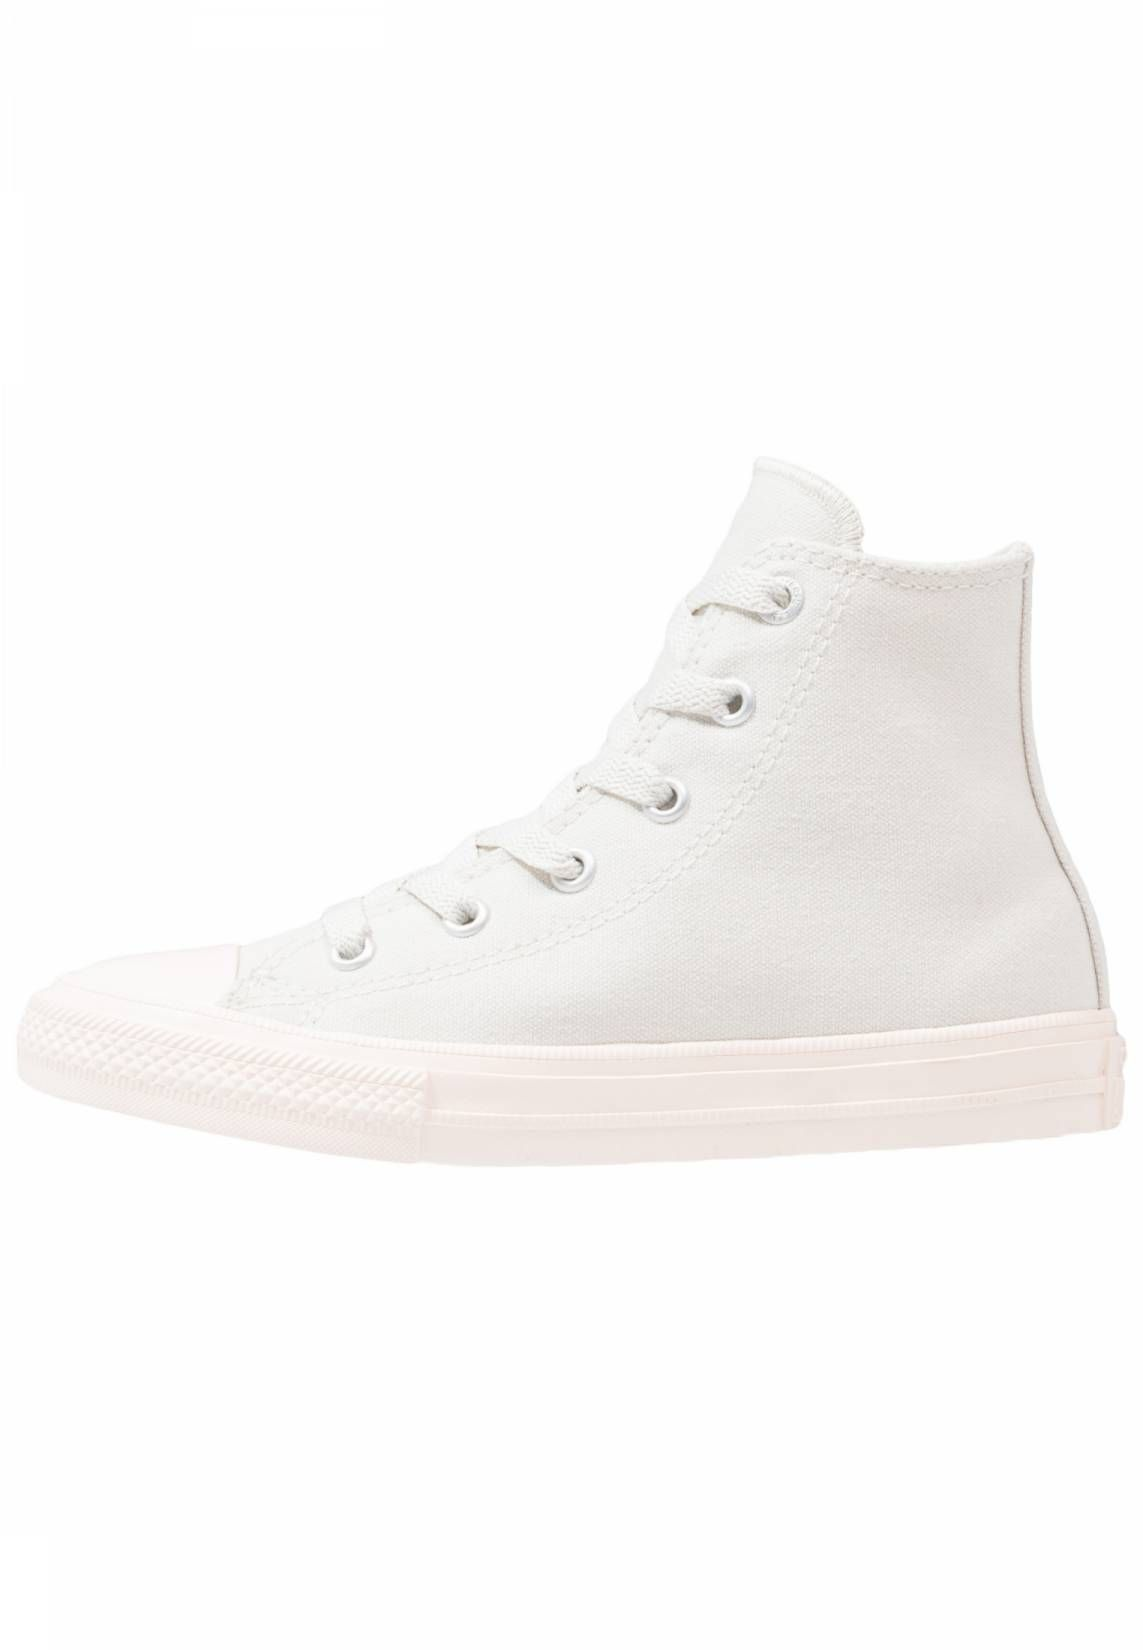 converse all star ii bianche alte